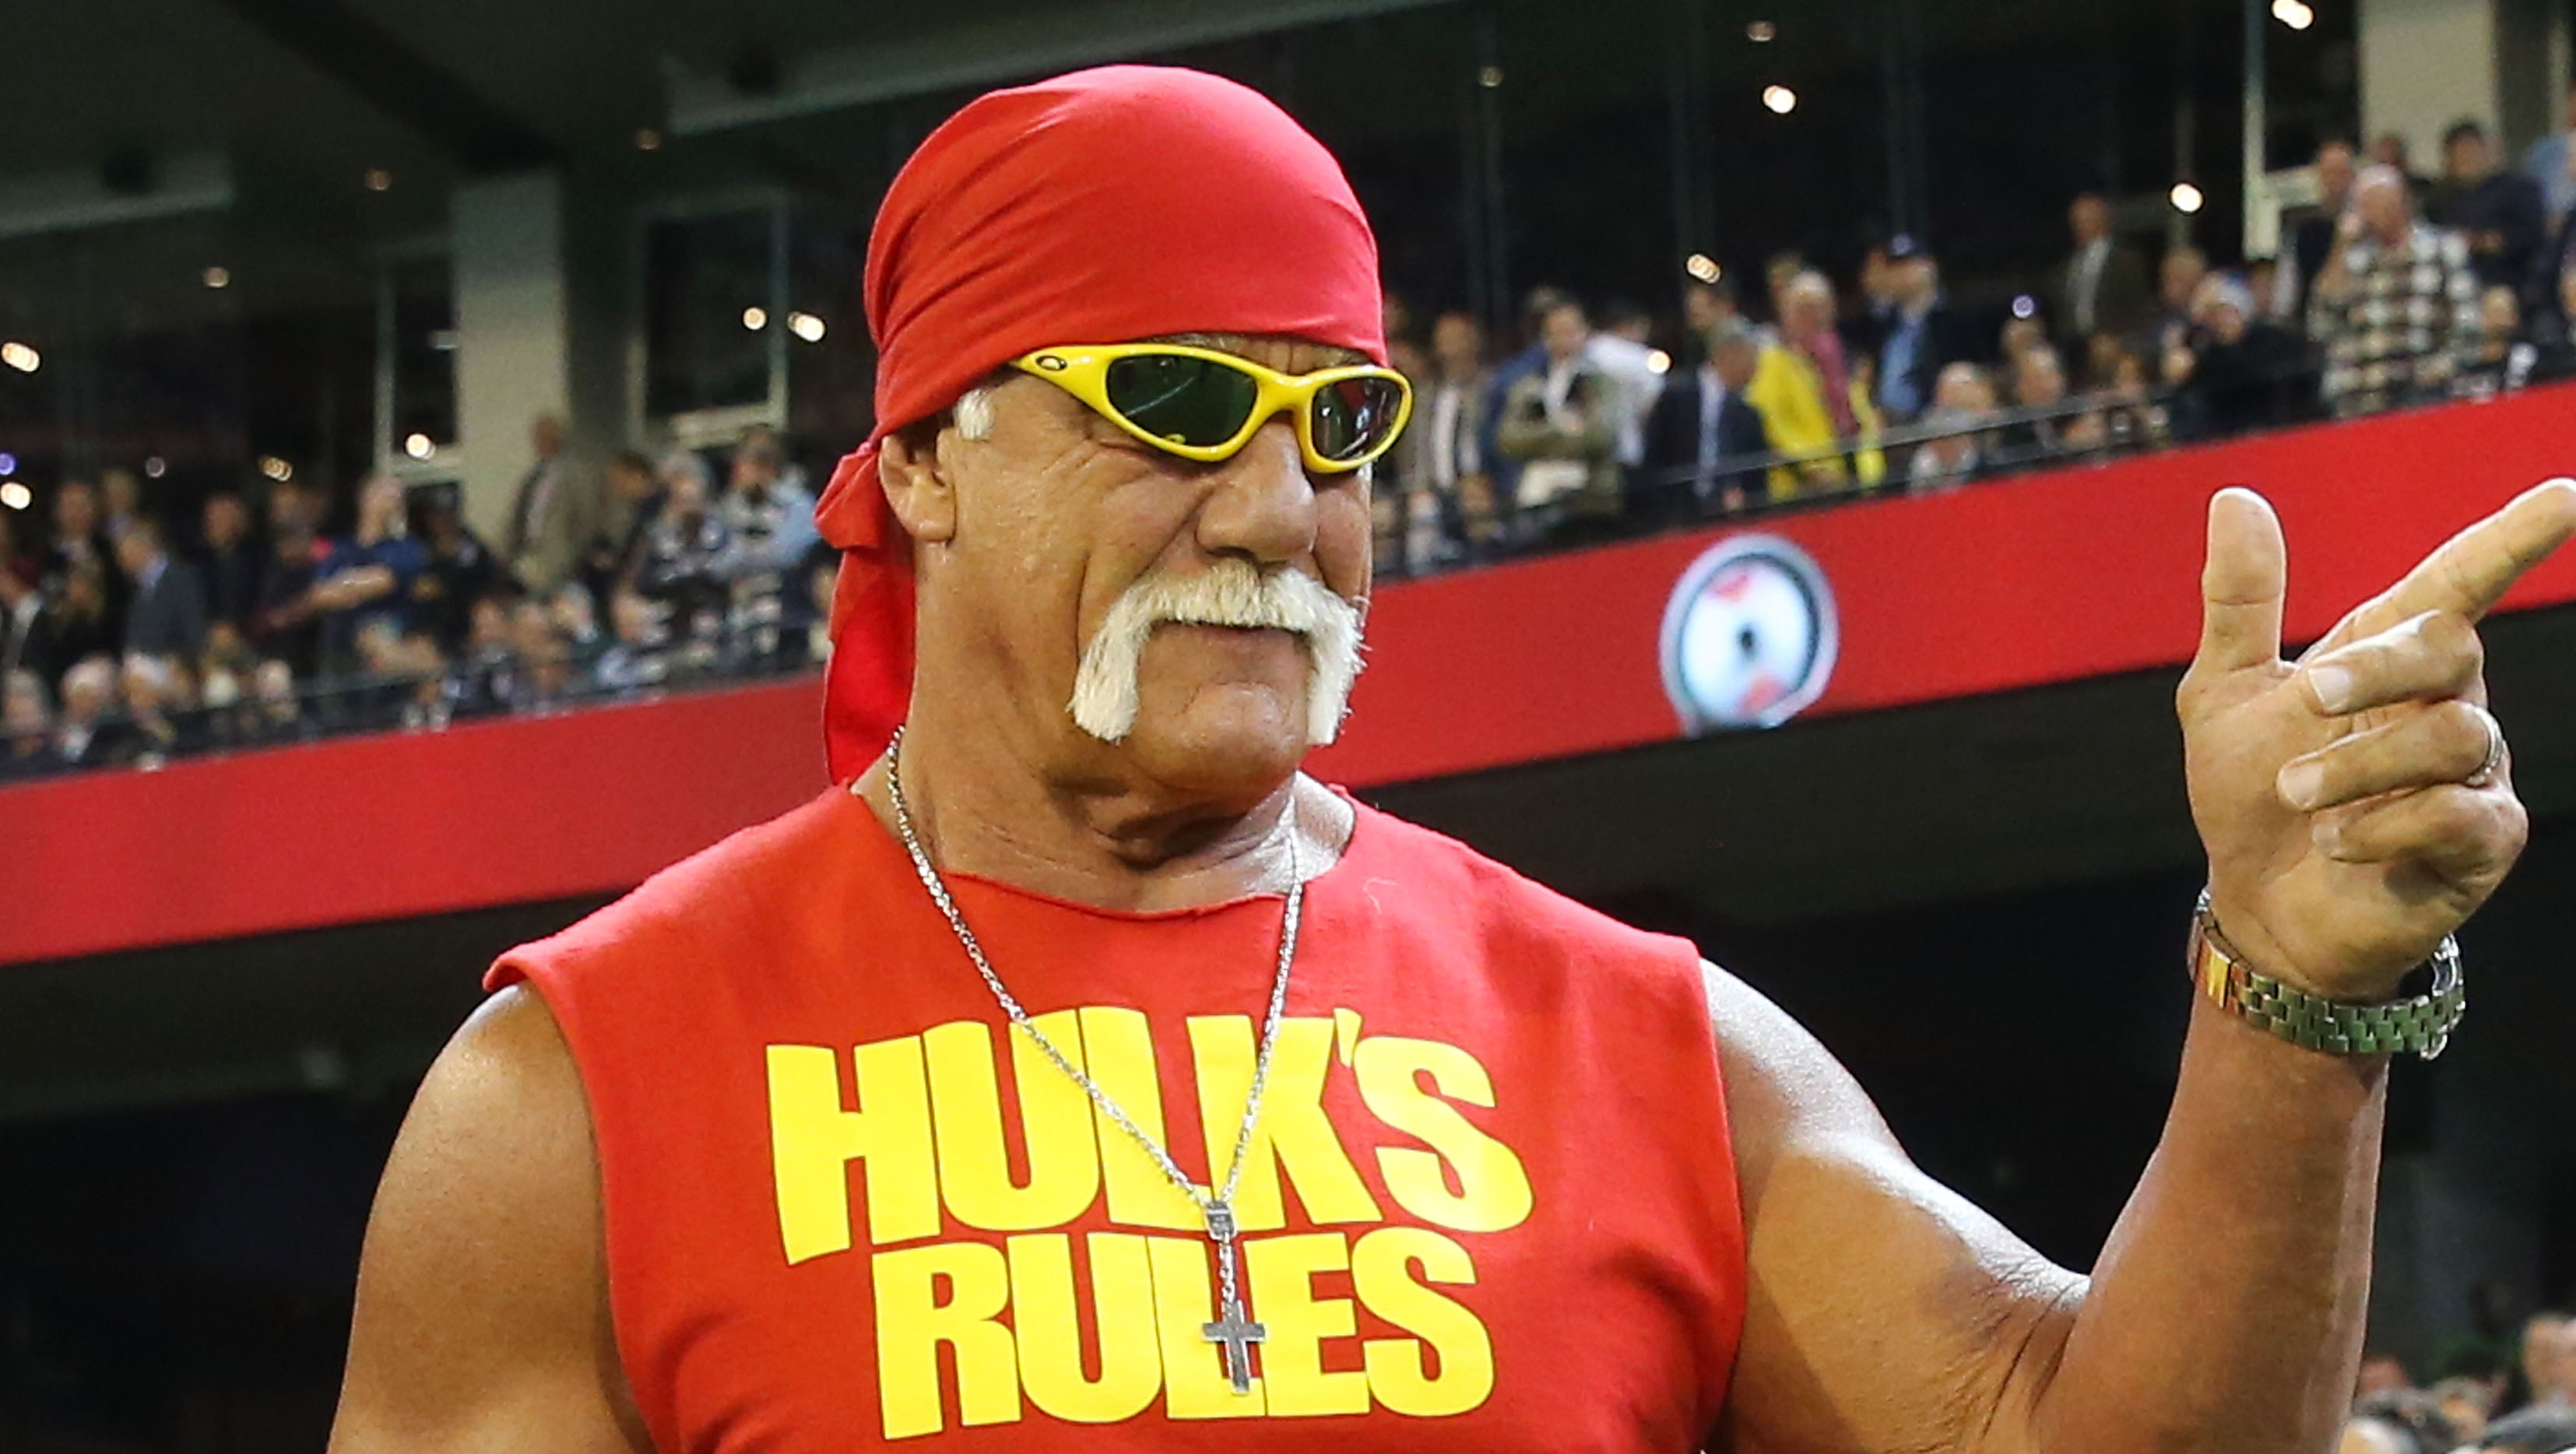 Image result for Hulk Hogan,